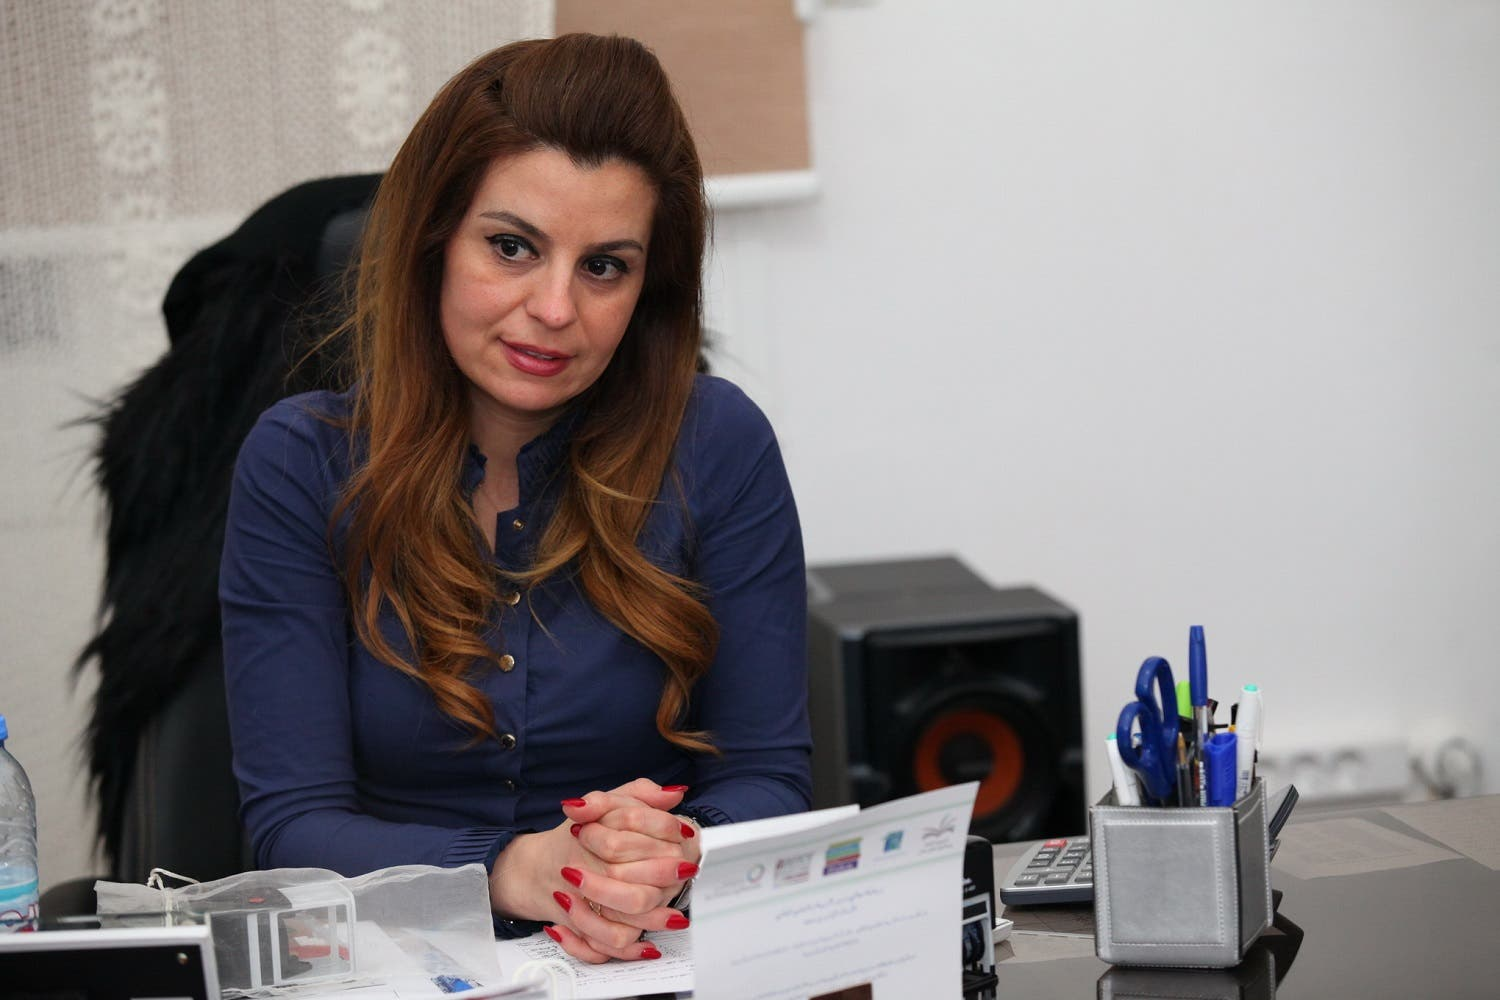 Official School for Boys in Lebanon's Cosba, director, Mireille Abbod (Photo: Roudy Lattouf)